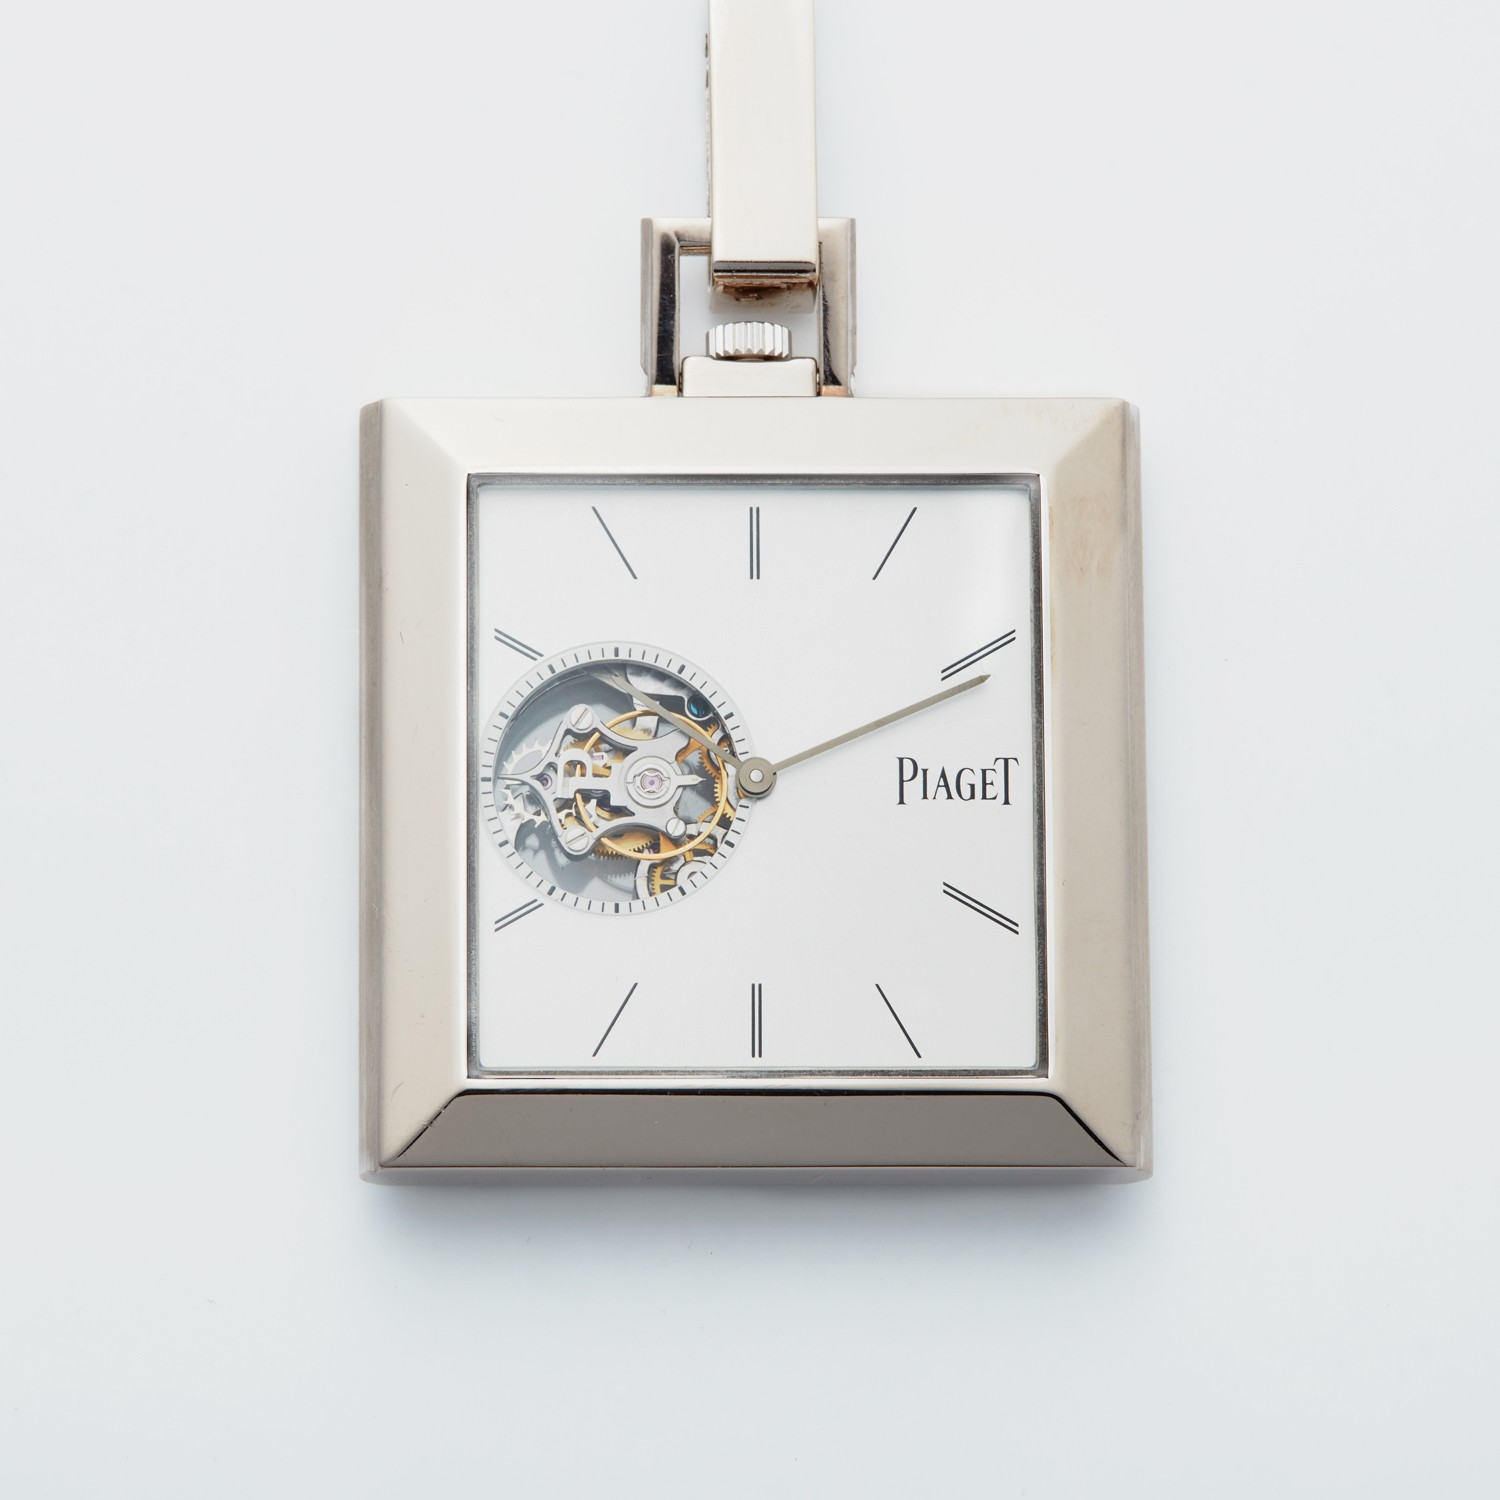 Piaget Altipano Tourbillion Pocket Watch in White gold